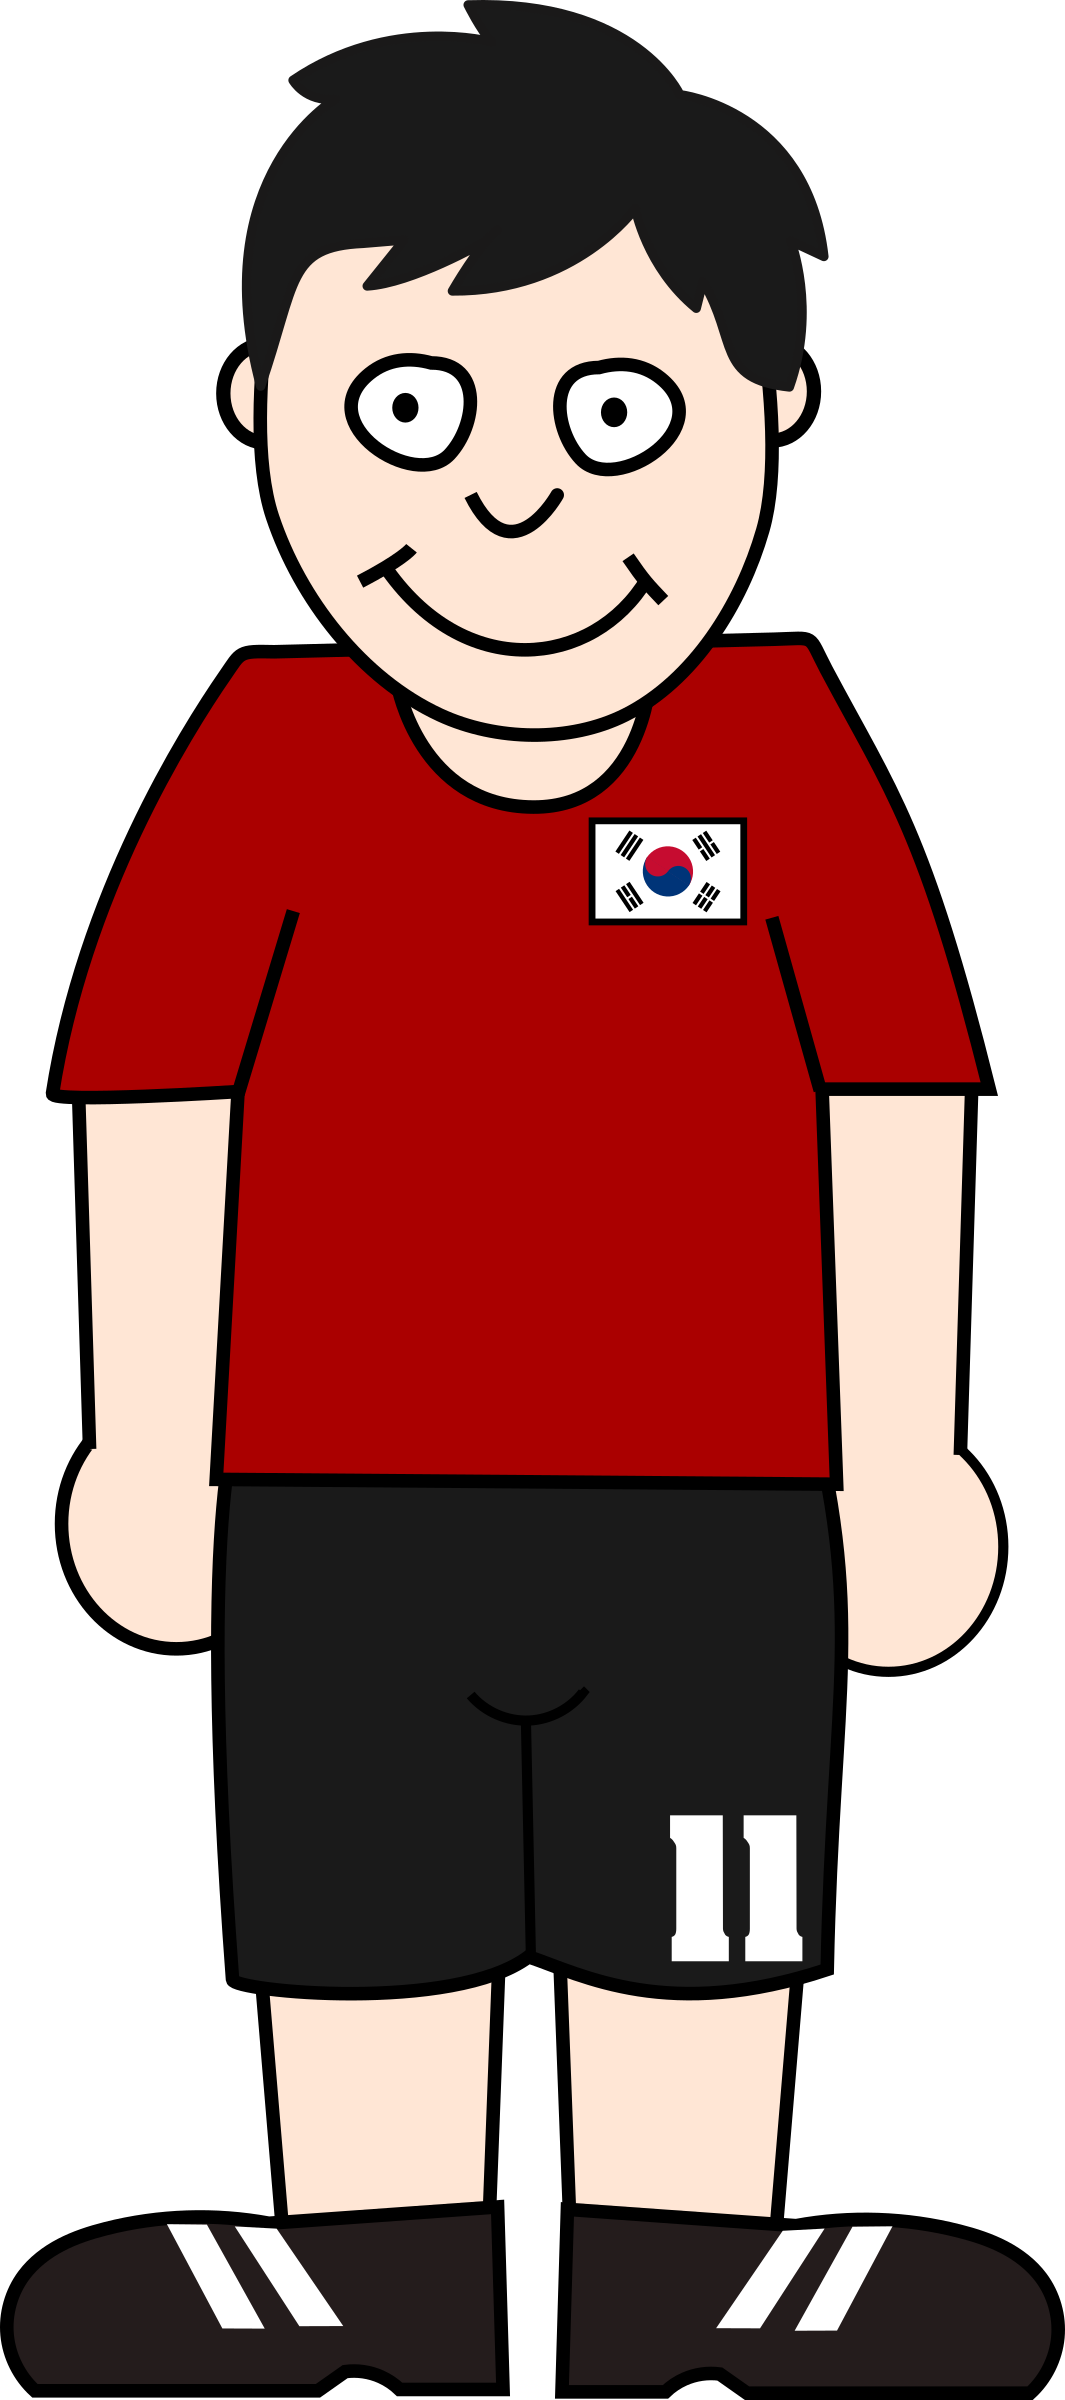 Football player south korea by Bingenberg